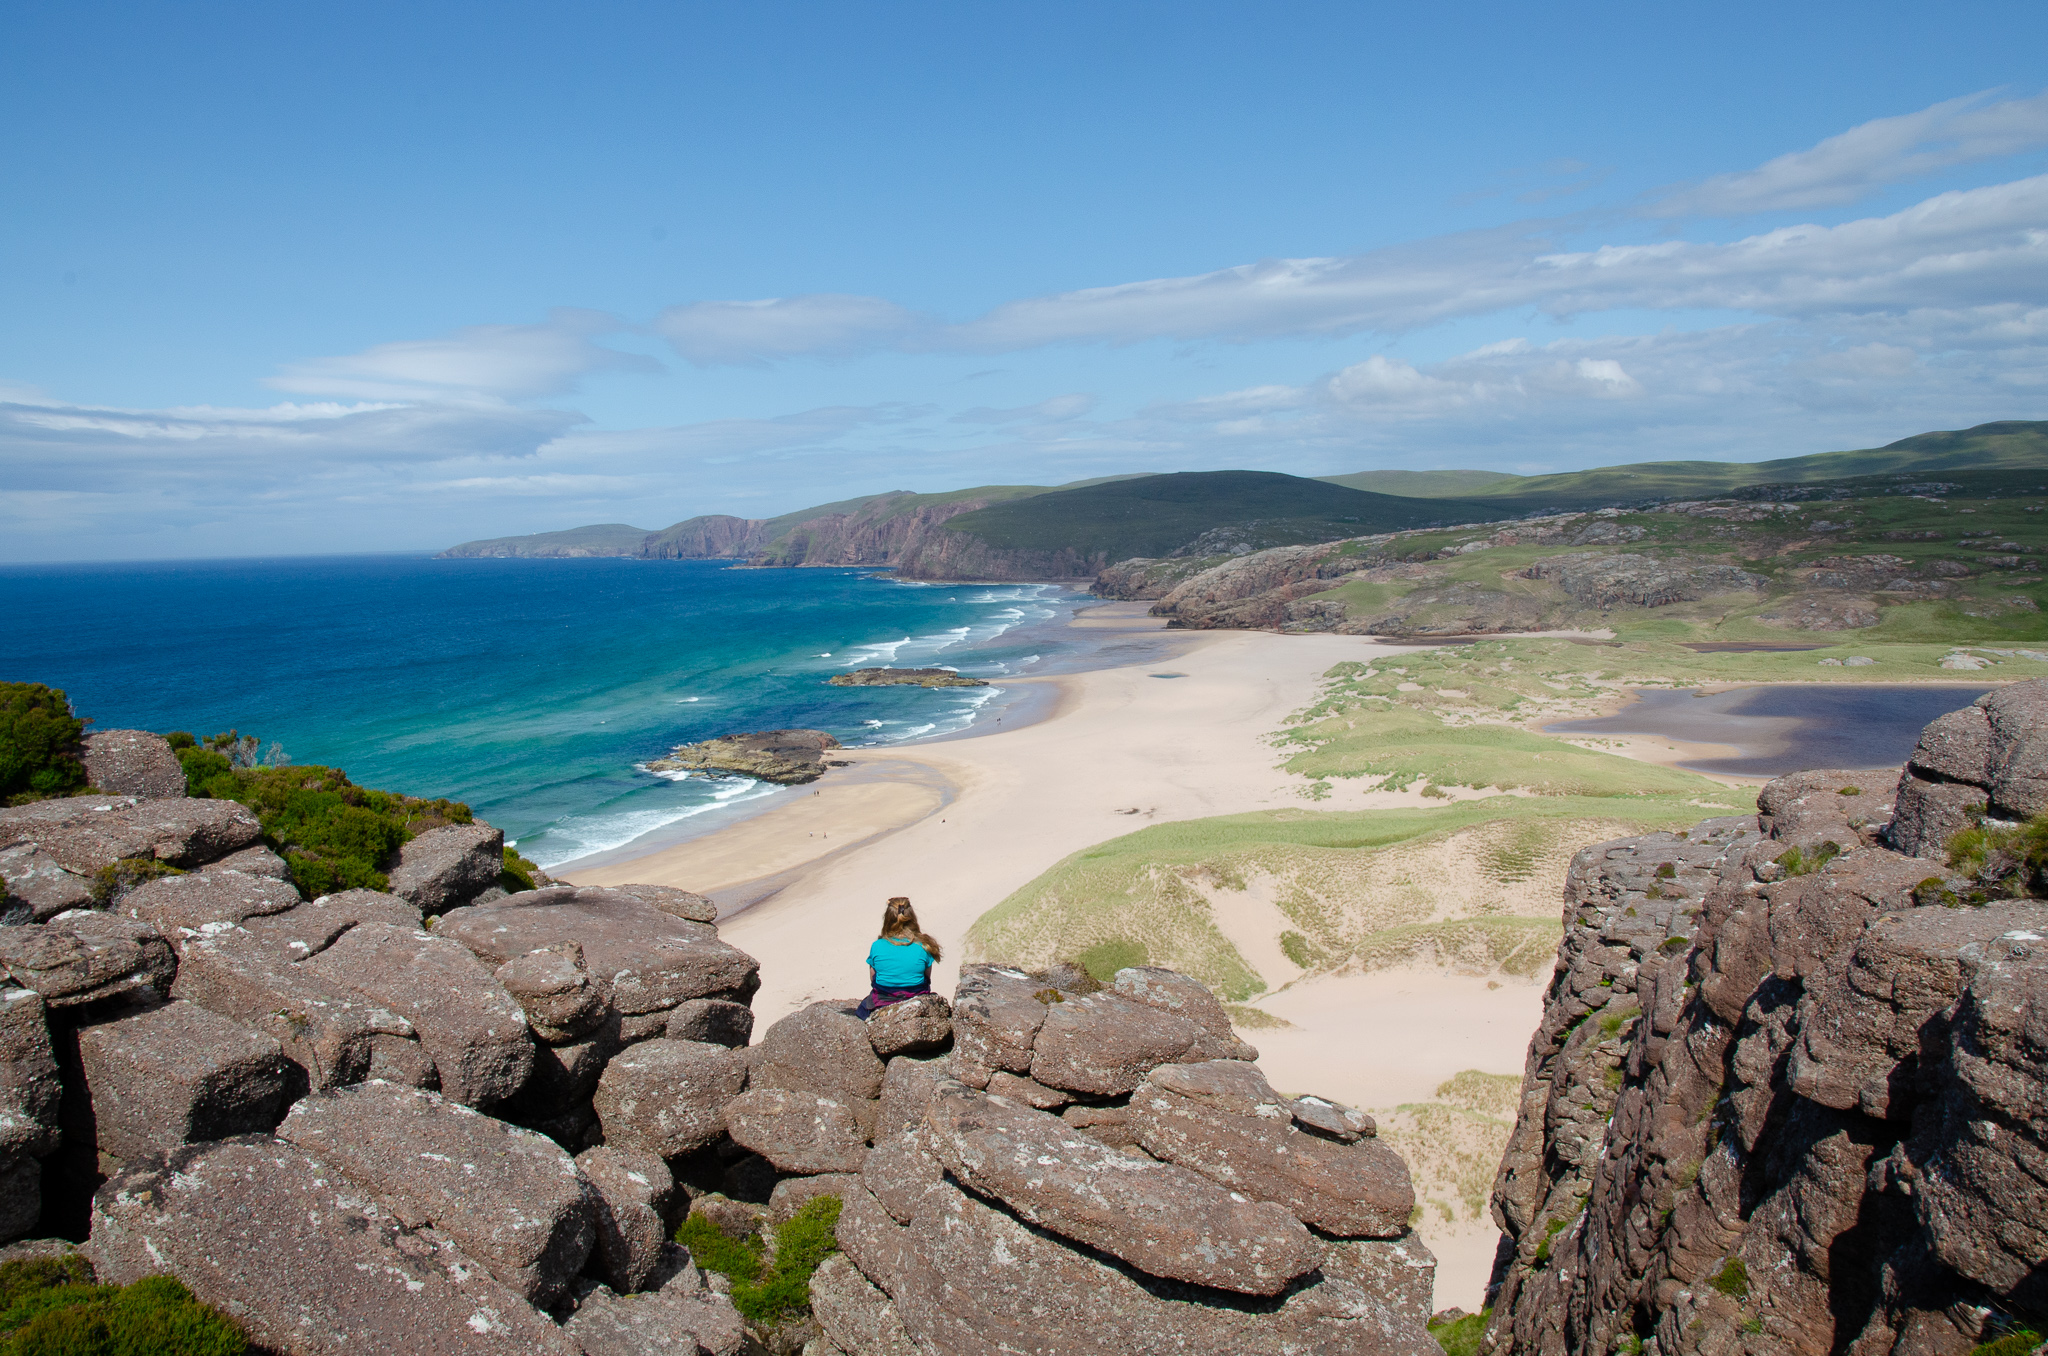 worth the climb up! breathtaking views across Sandwood Bay from our rocky outpost